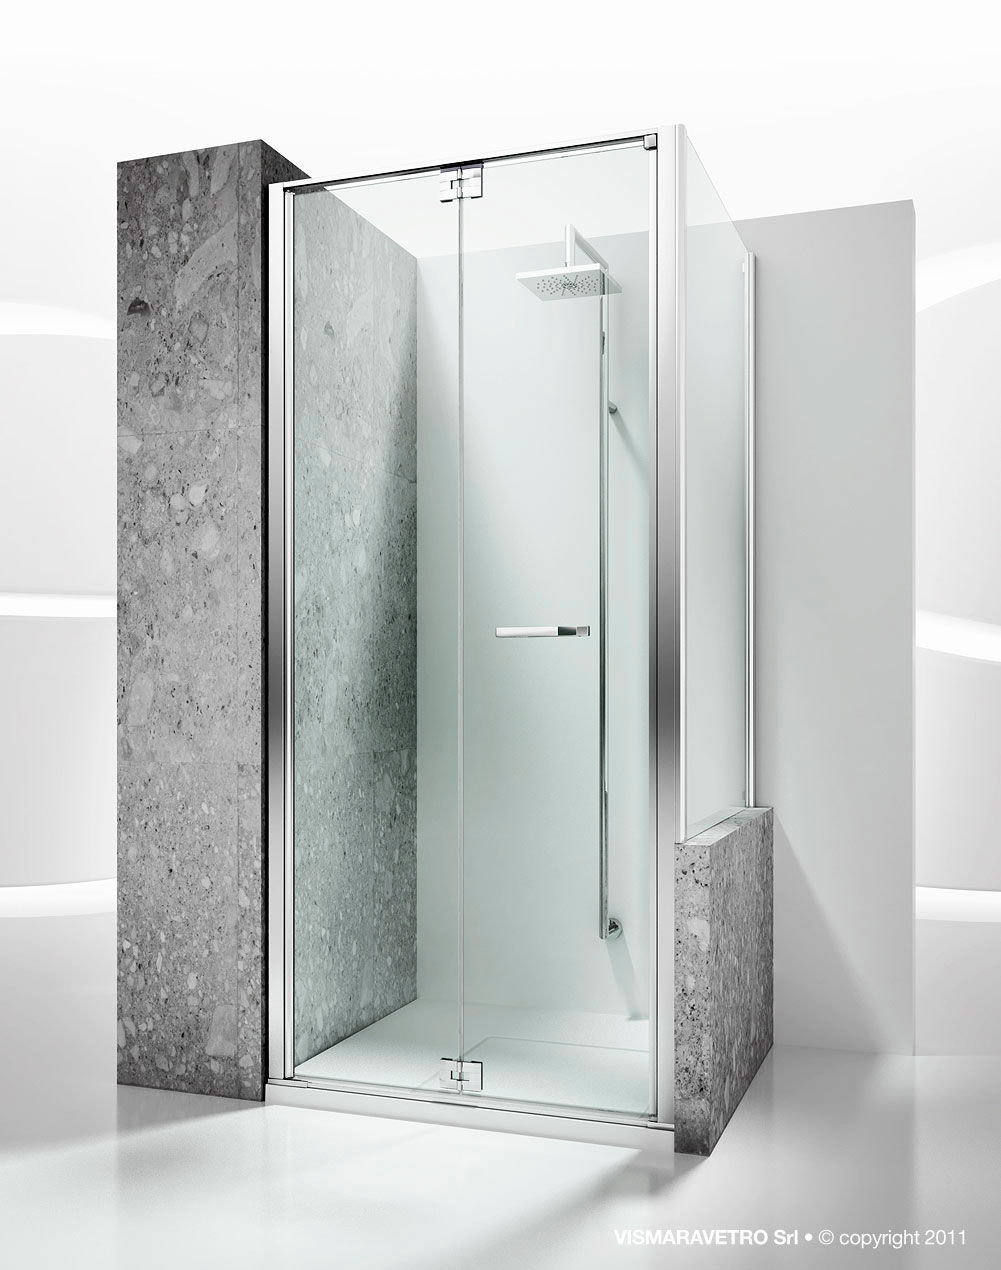 Folding shower screen / corner - REPLAY: RN+RV - VISMARAVETRO